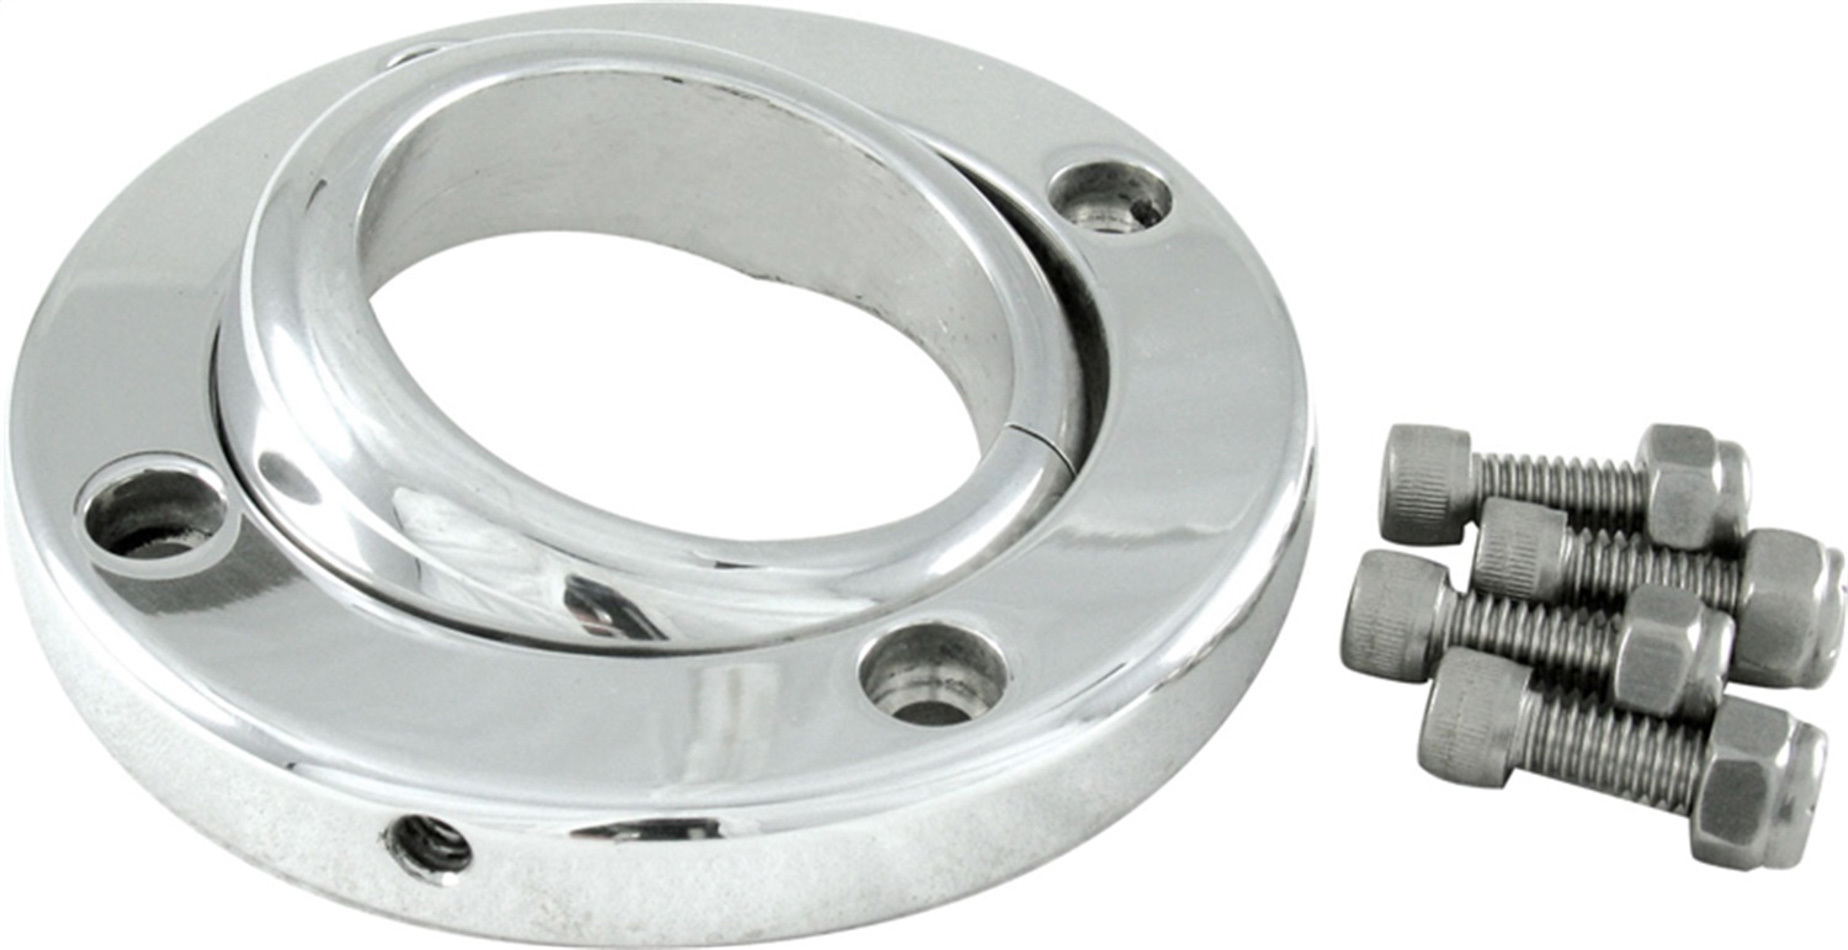 Borgeson 909002 Steering Column Bracket, 3-3/4 in Outer Diameter, 1-3/4 in Diameter Tube, Swivel, Aluminum, Polished, Each